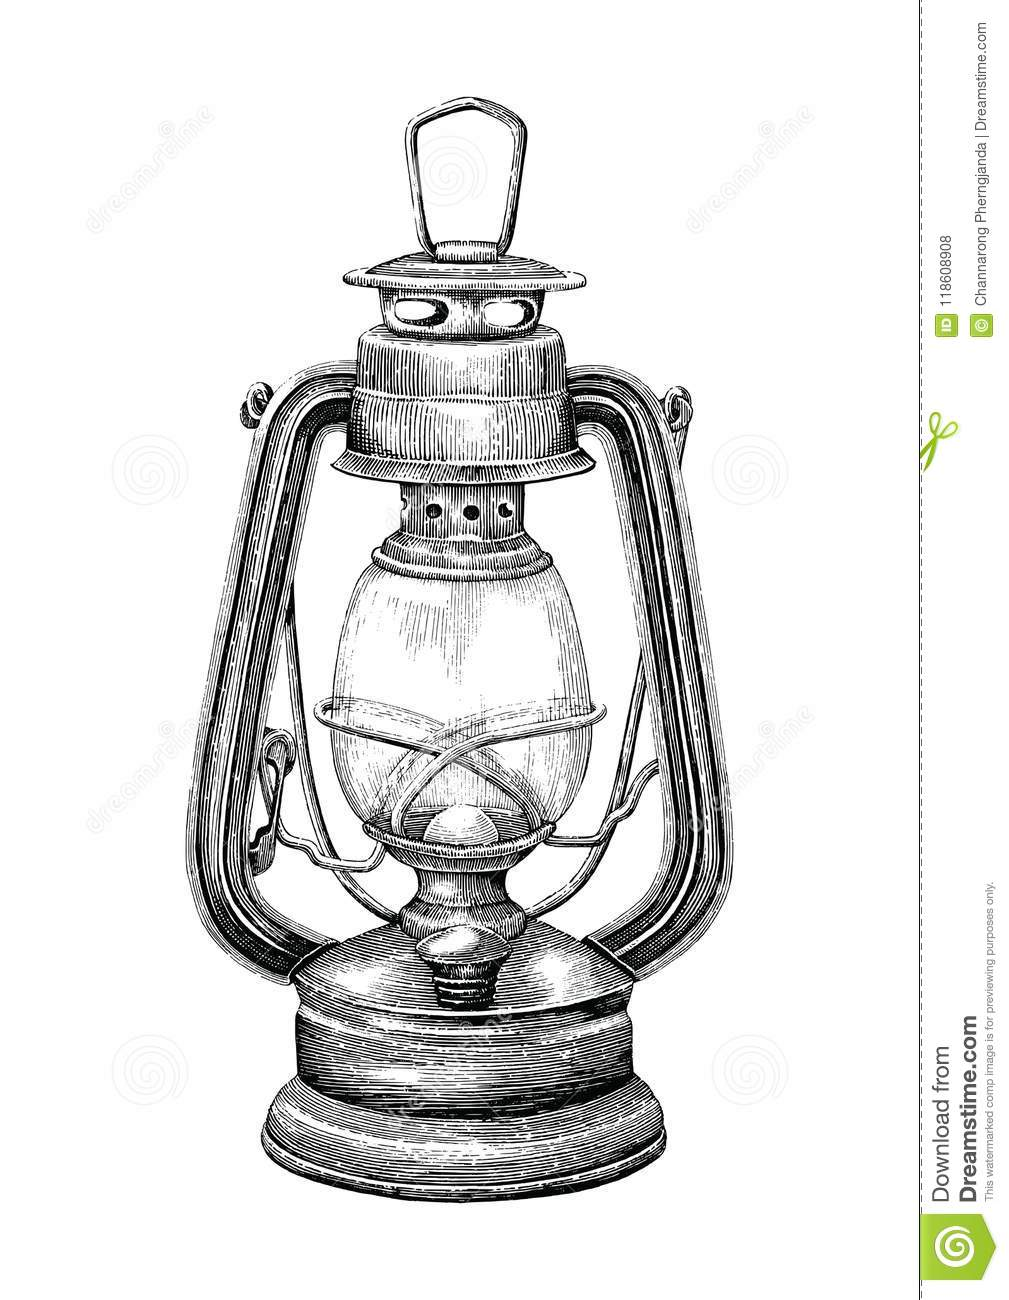 Vintage lantern hand drawing engraving style isolate on white ba